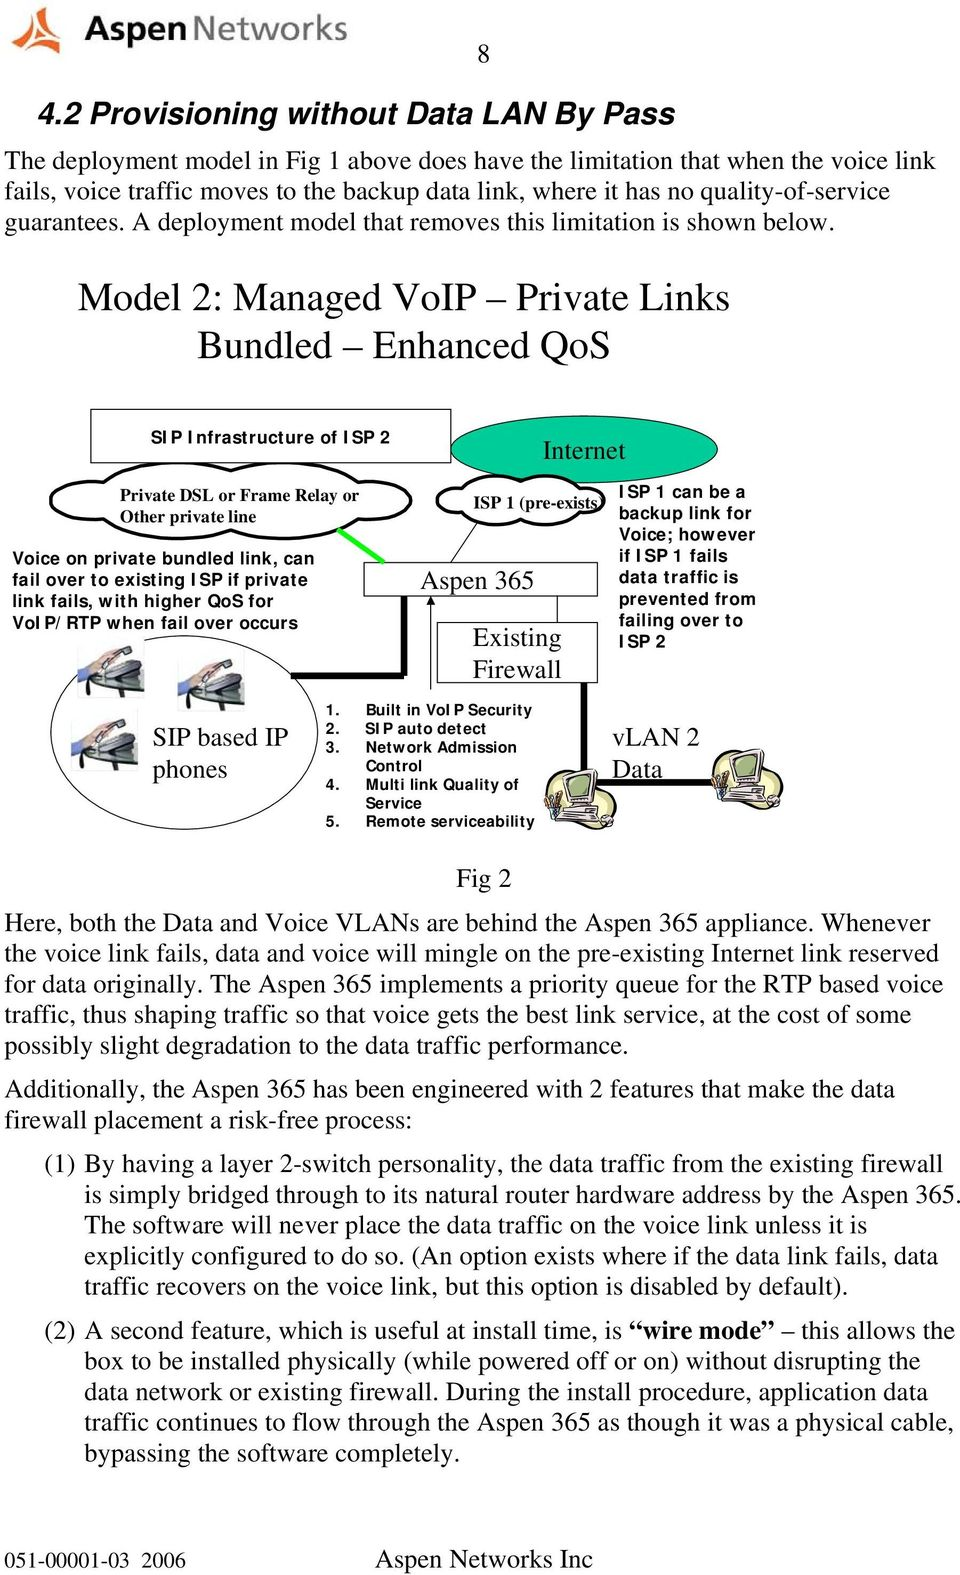 Model 2: Managed VoIP Private Links Bundled Enhanced QoS 8 SIP Infrastructure of ISP 2 Internet Private DSL or Frame Relay or Other private line Voice on private bundled link, can fail over to